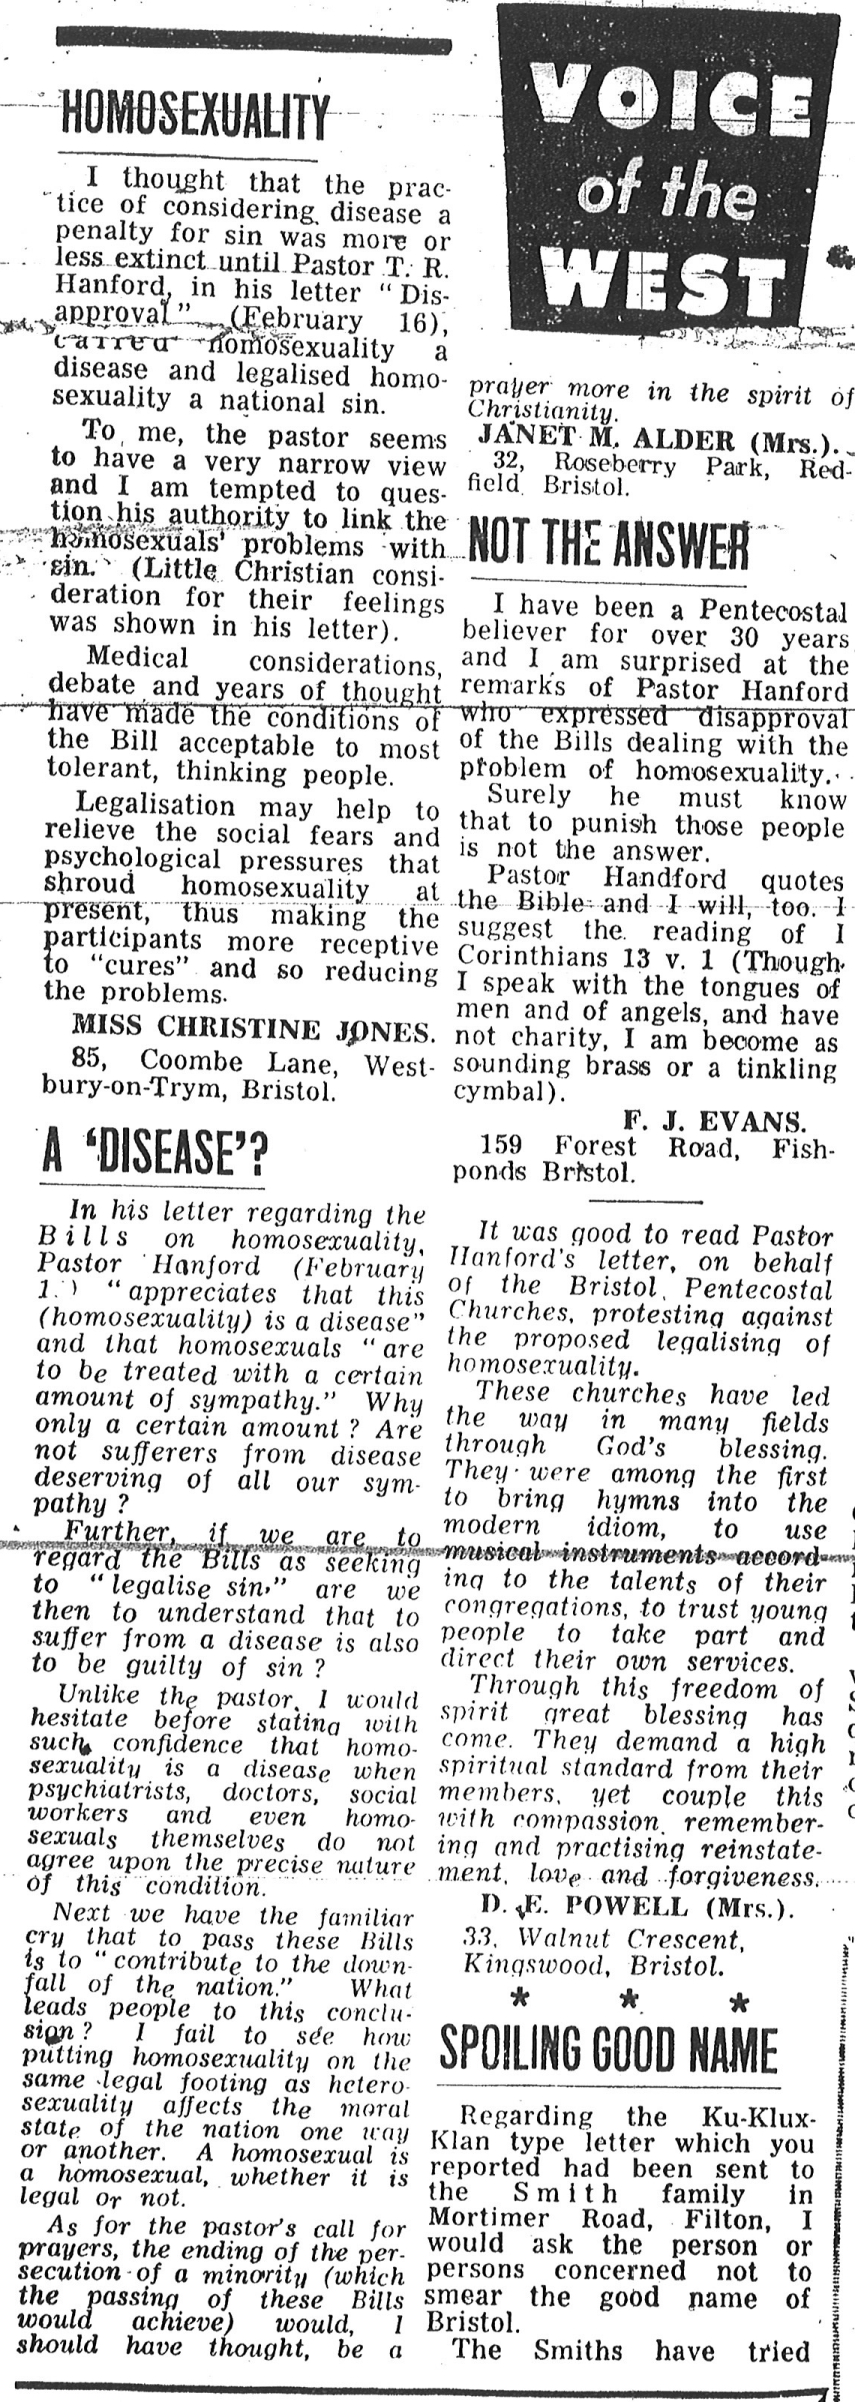 Some letters from readers of the Bristol Evning Post regarding the Criminal Offences Act 1967